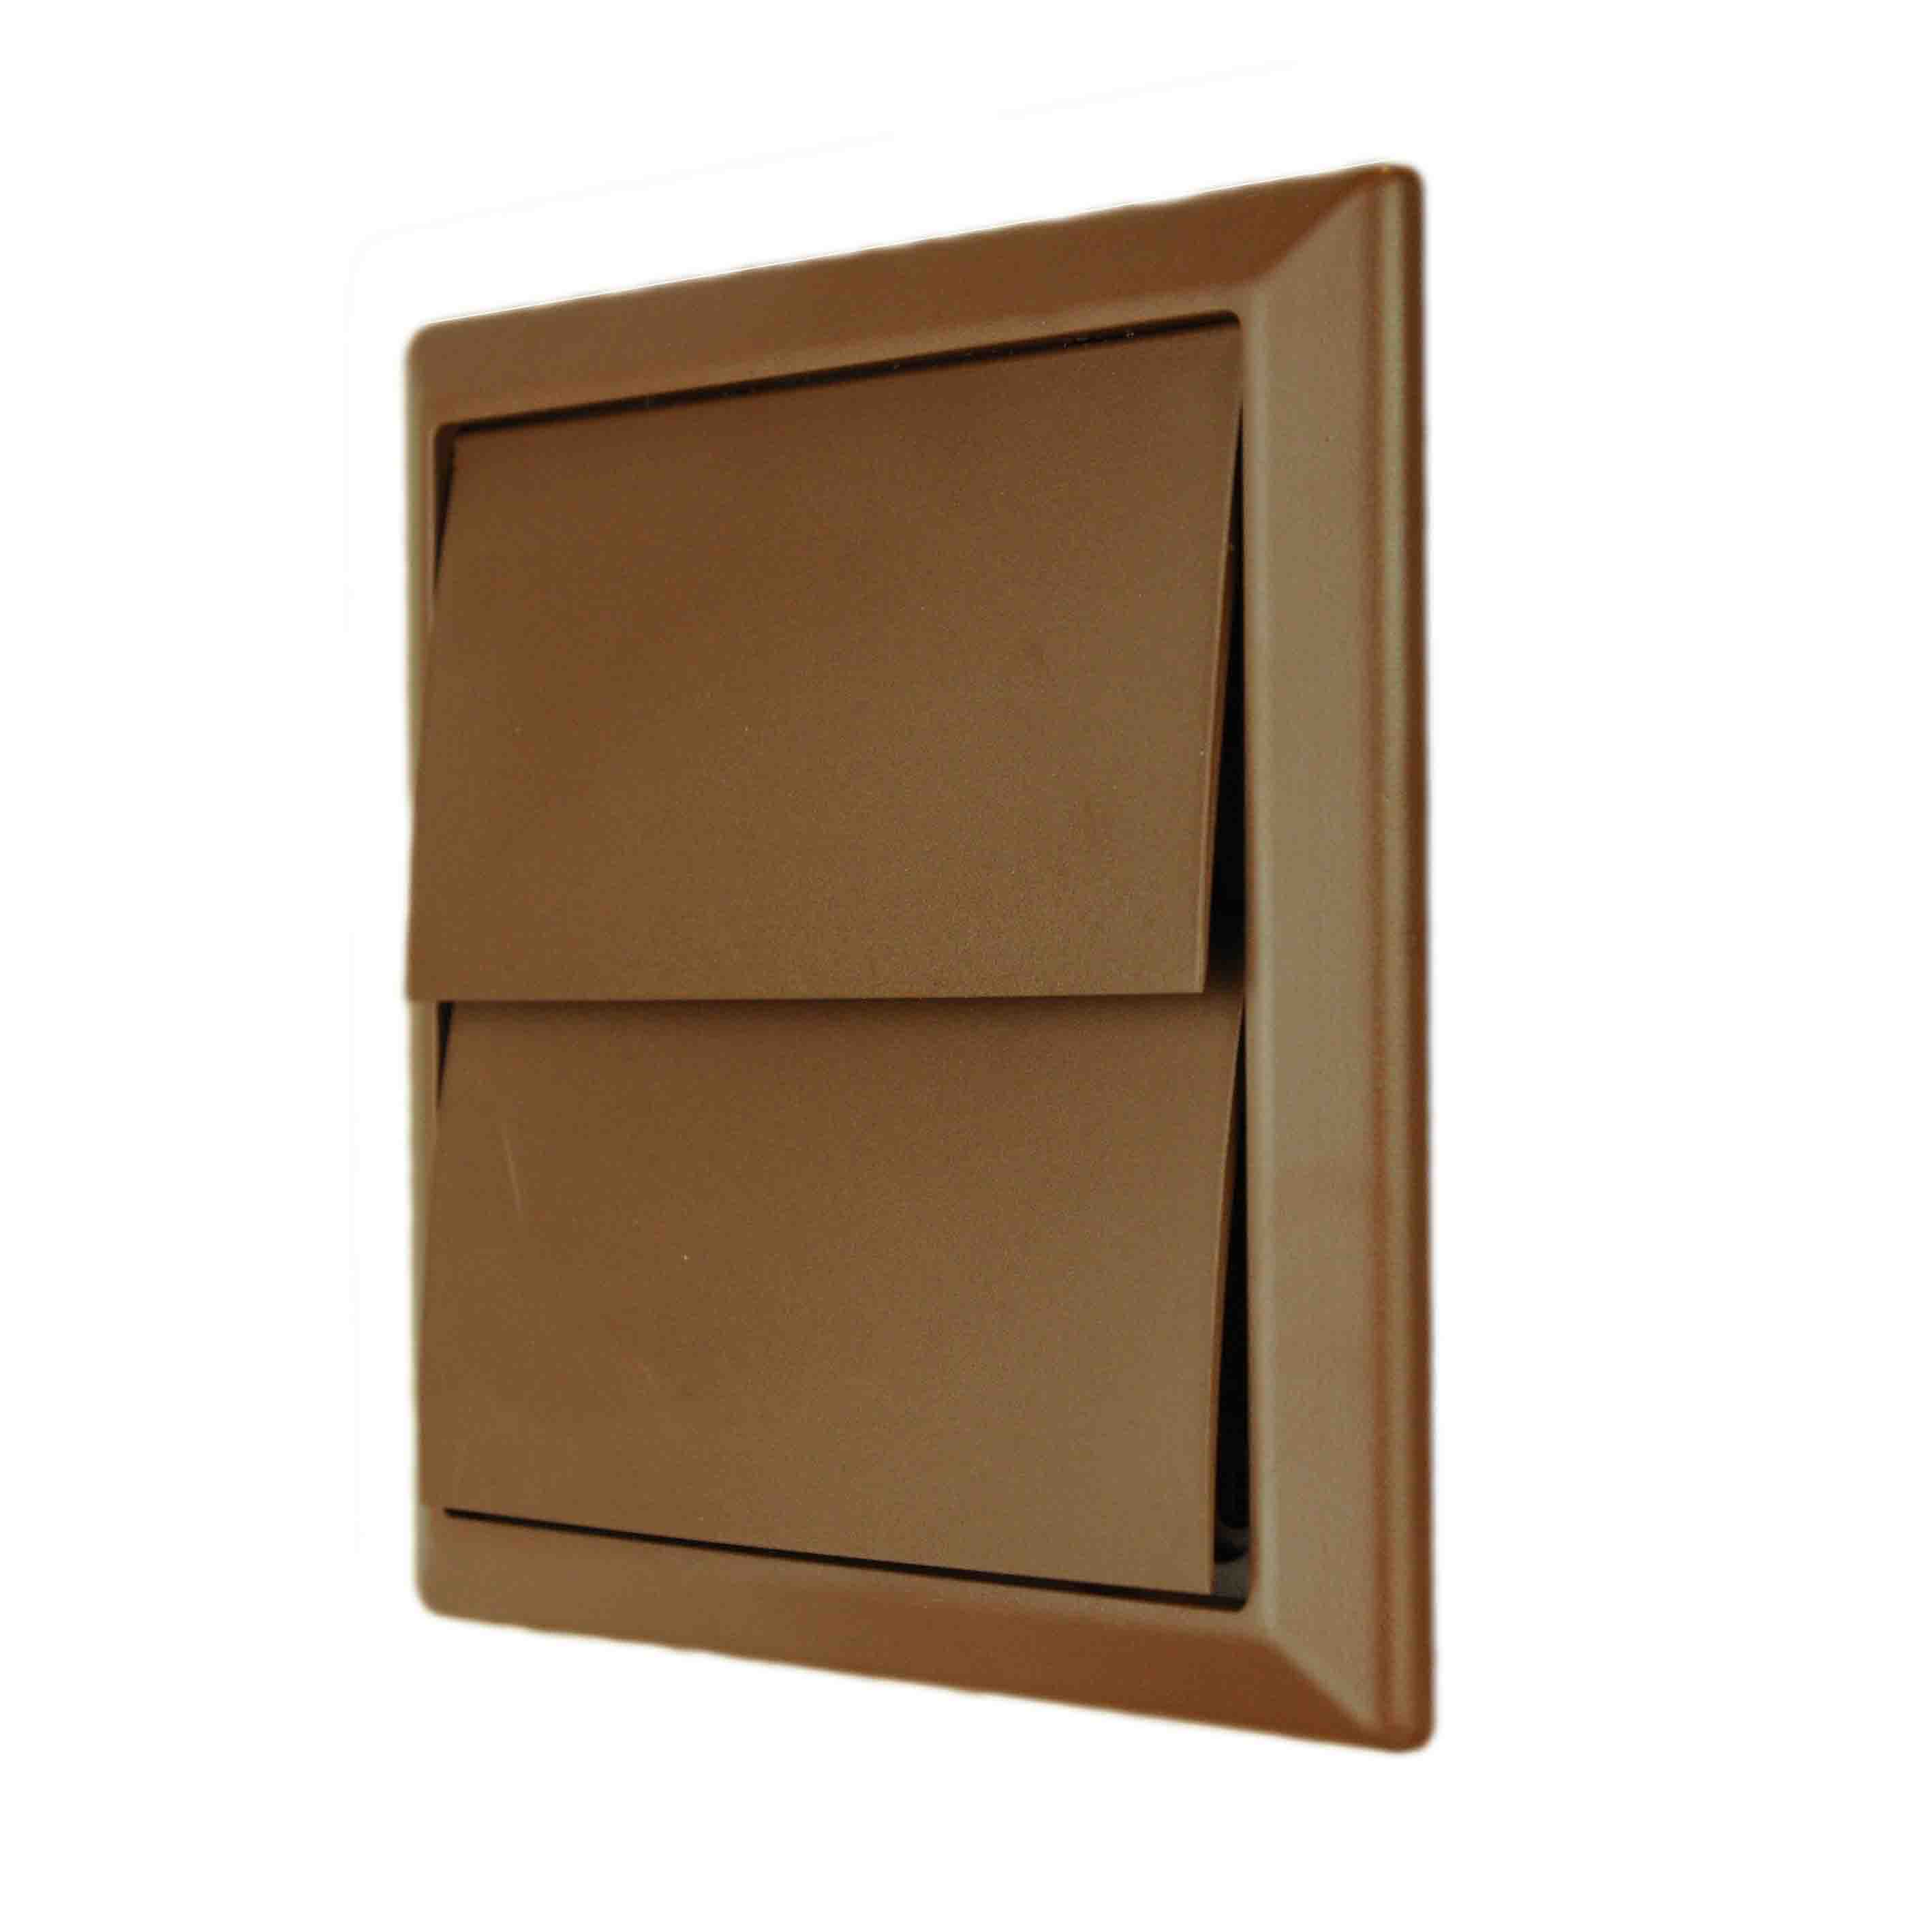 Domus 6900B Wall Outlet Rnd 150mm Brown